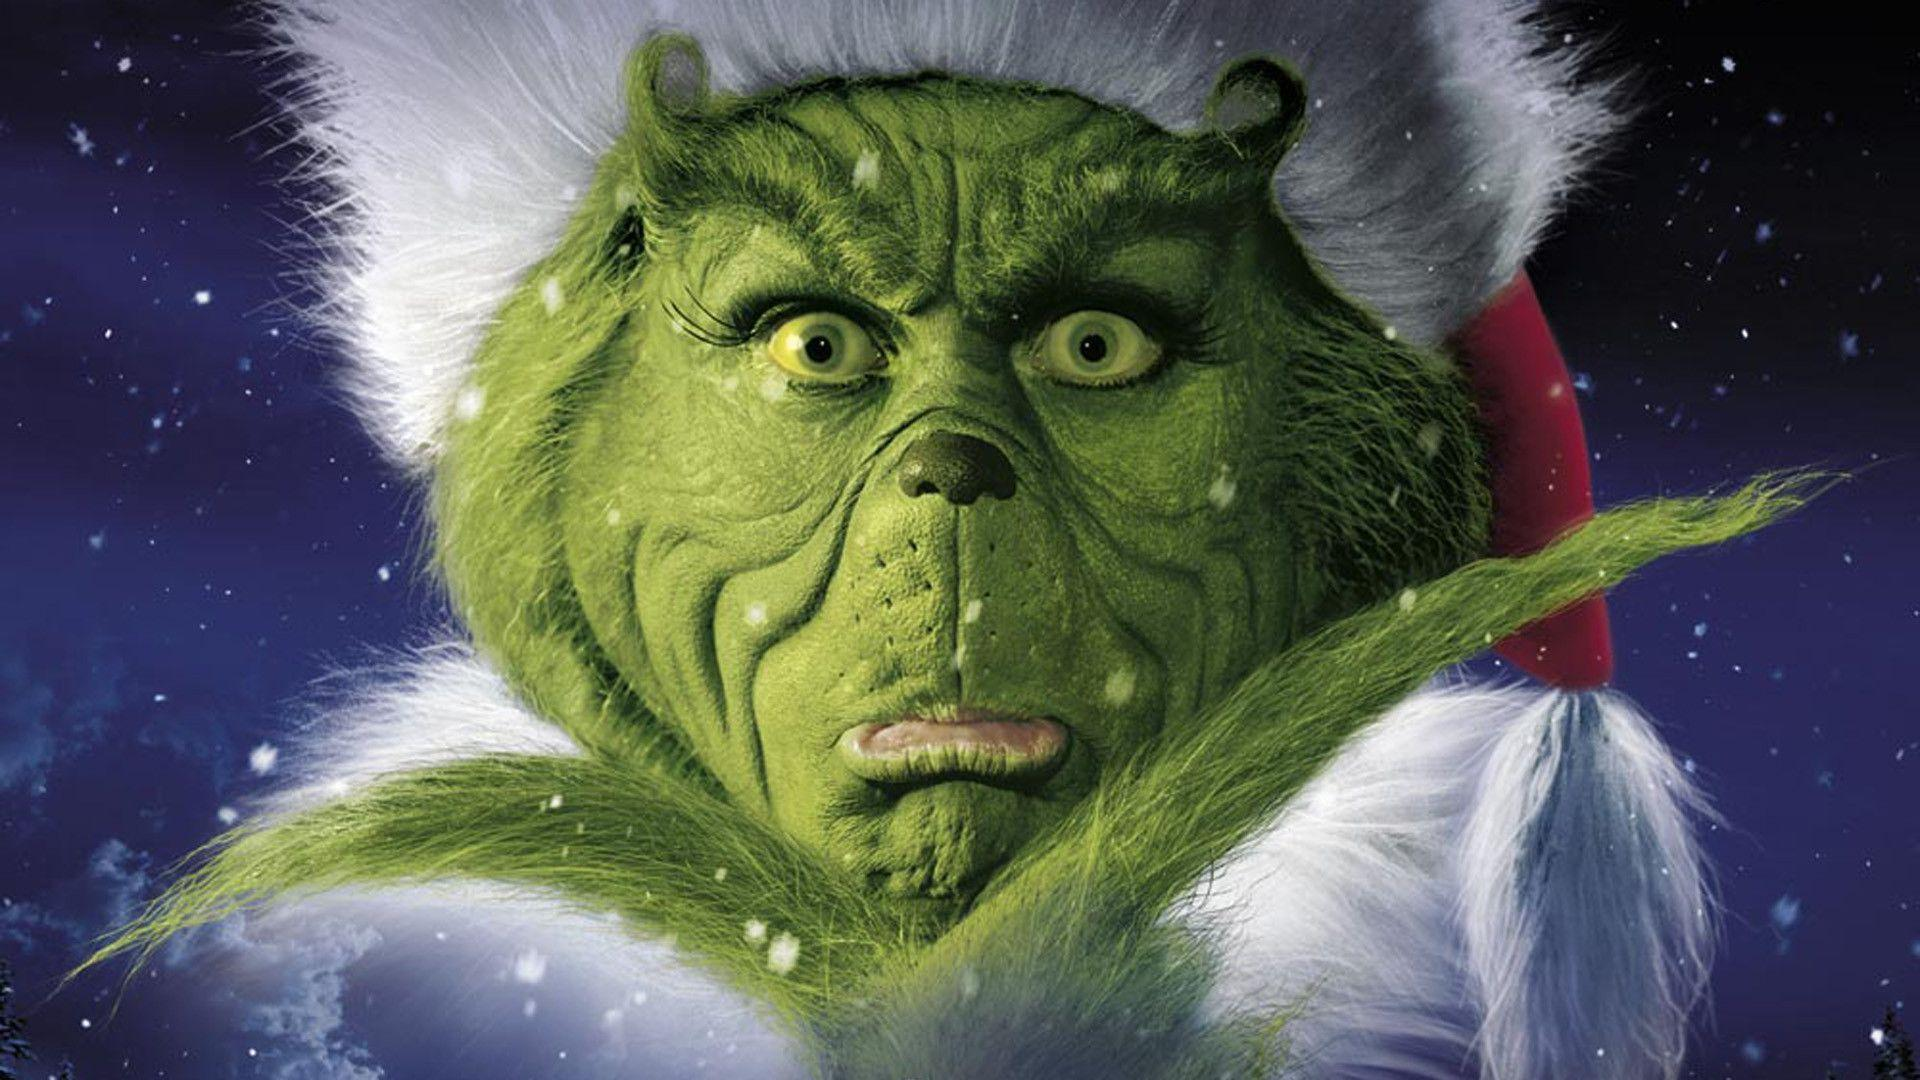 Grinch Wallpapers   Top Grinch Backgrounds   WallpaperAccess 1920x1080